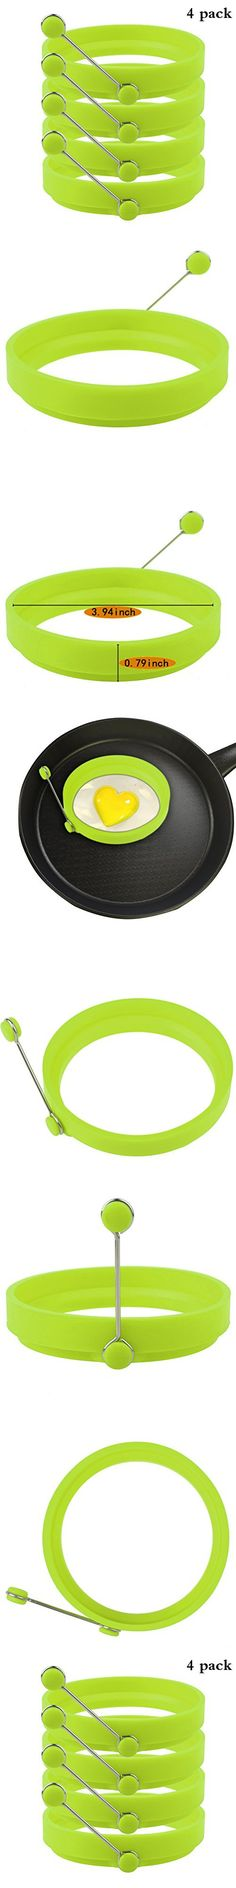 Robot Bee 4 Pack Non-stick Silicone Egg Ring, Kitchen Cooking Round Egg Pancake Rings Mold BPA Free-Green